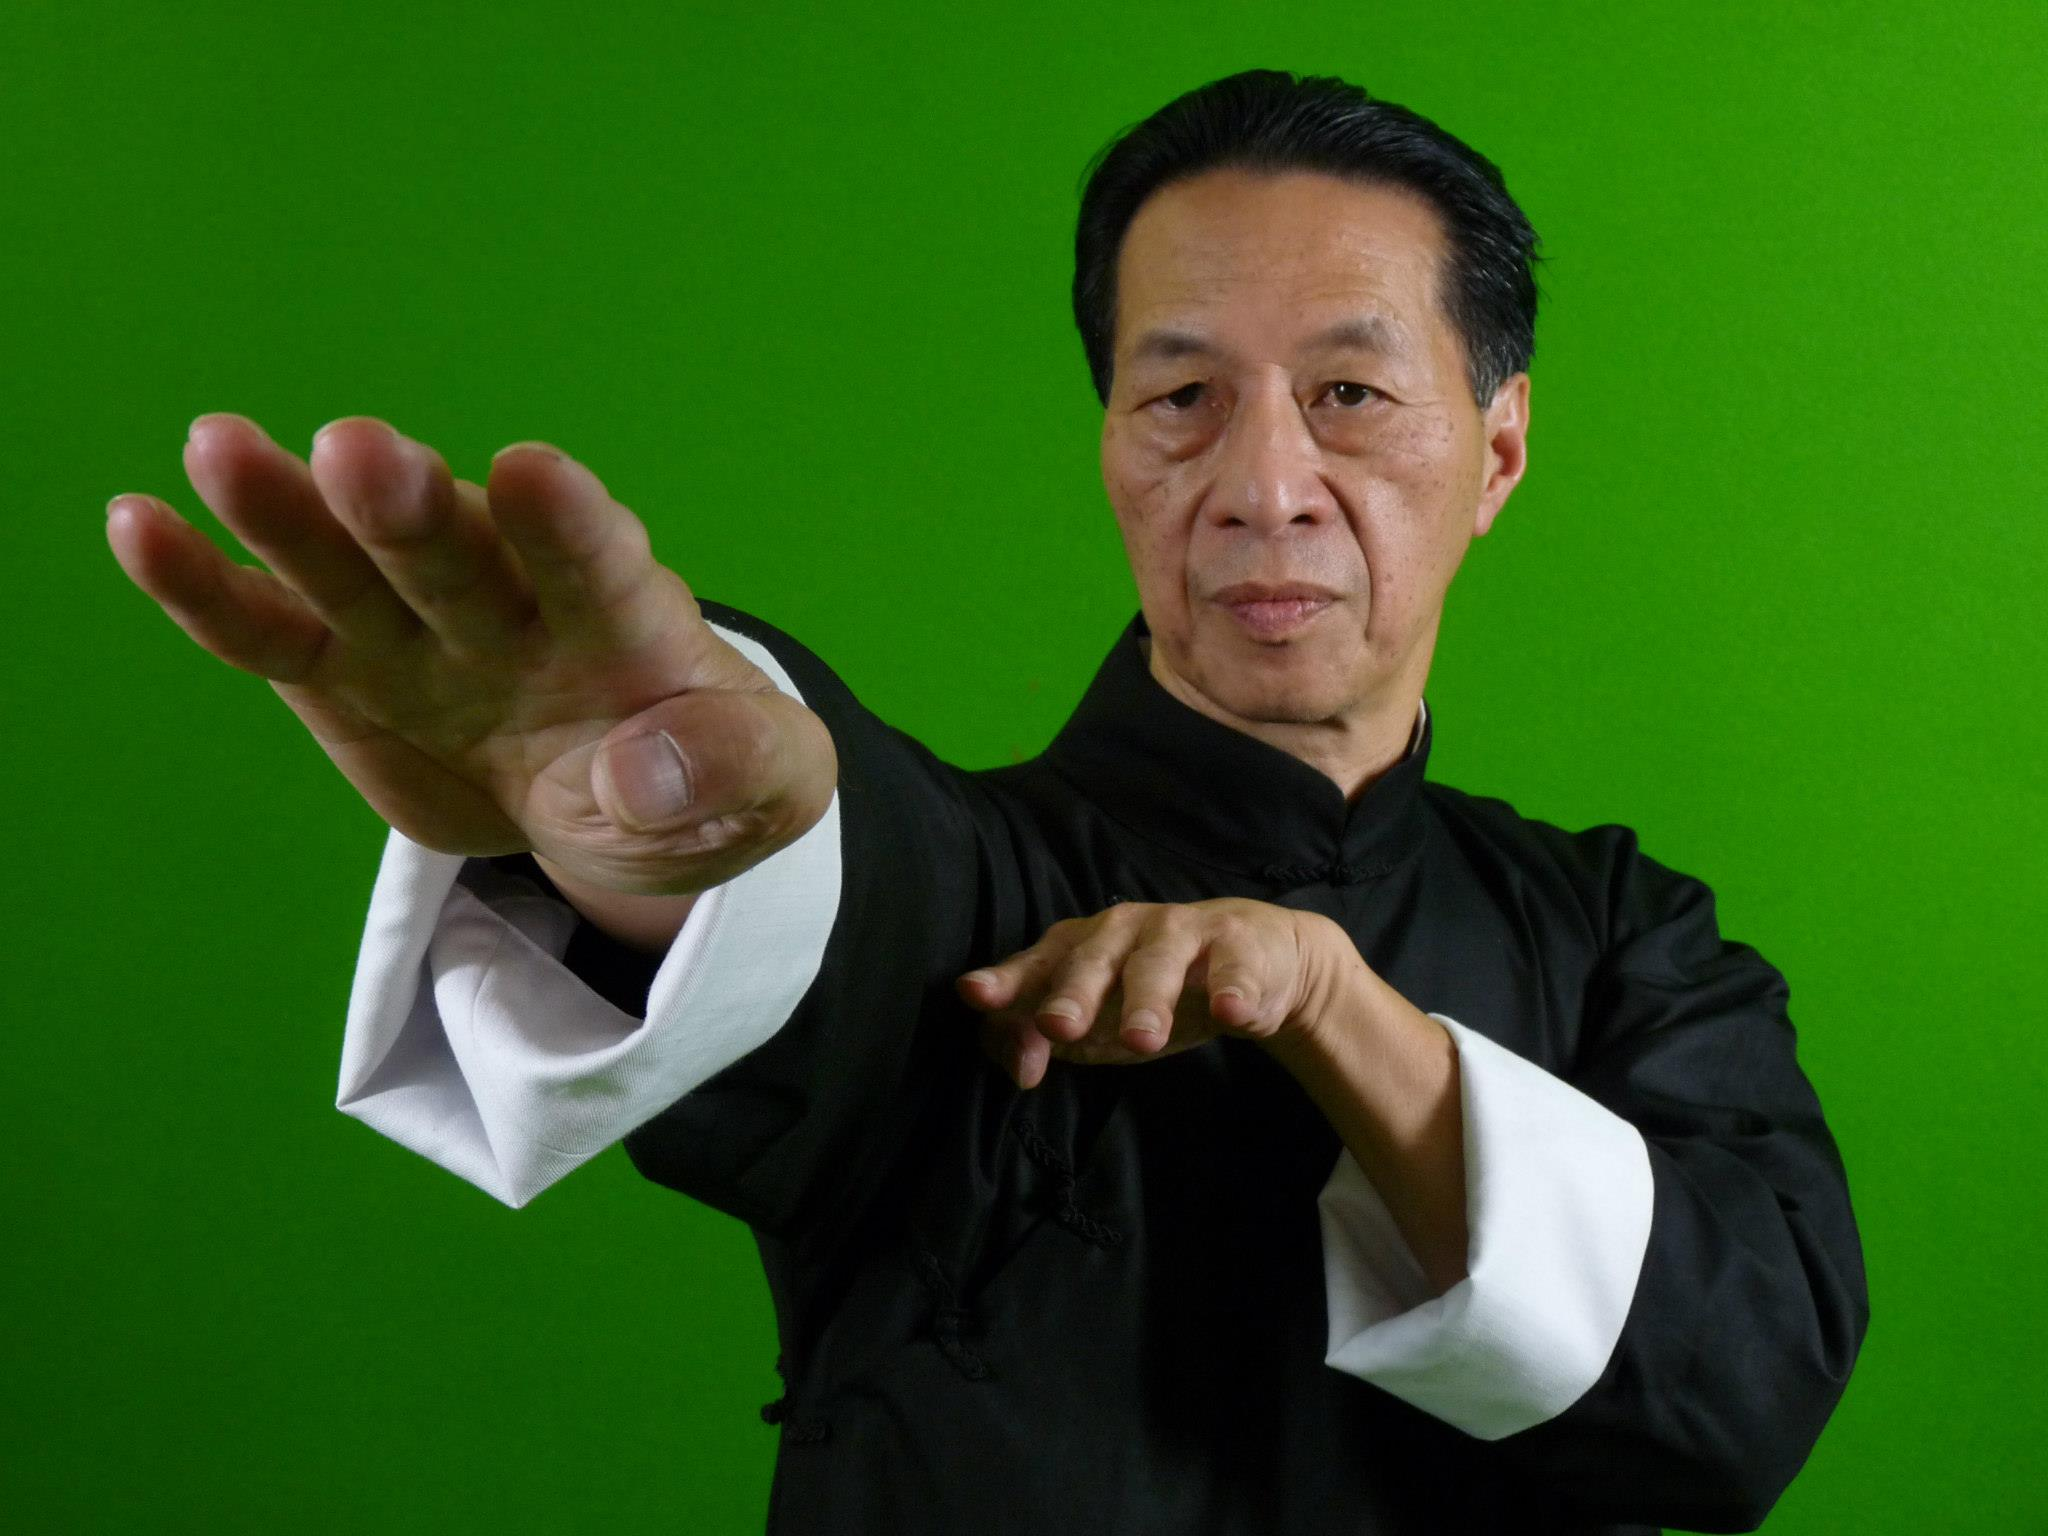 wing chun What is ip man wing chun wing chun is a very unique and scientific form of martial arts wing chun is a style of kung fu that originates from china, the martial art was later refined in hong kong by the late ip man wing chun's specialty is in close contact combat, using quick punches and kicks with a tight defence, coordinated through agile stances and footwork for a quick advance.